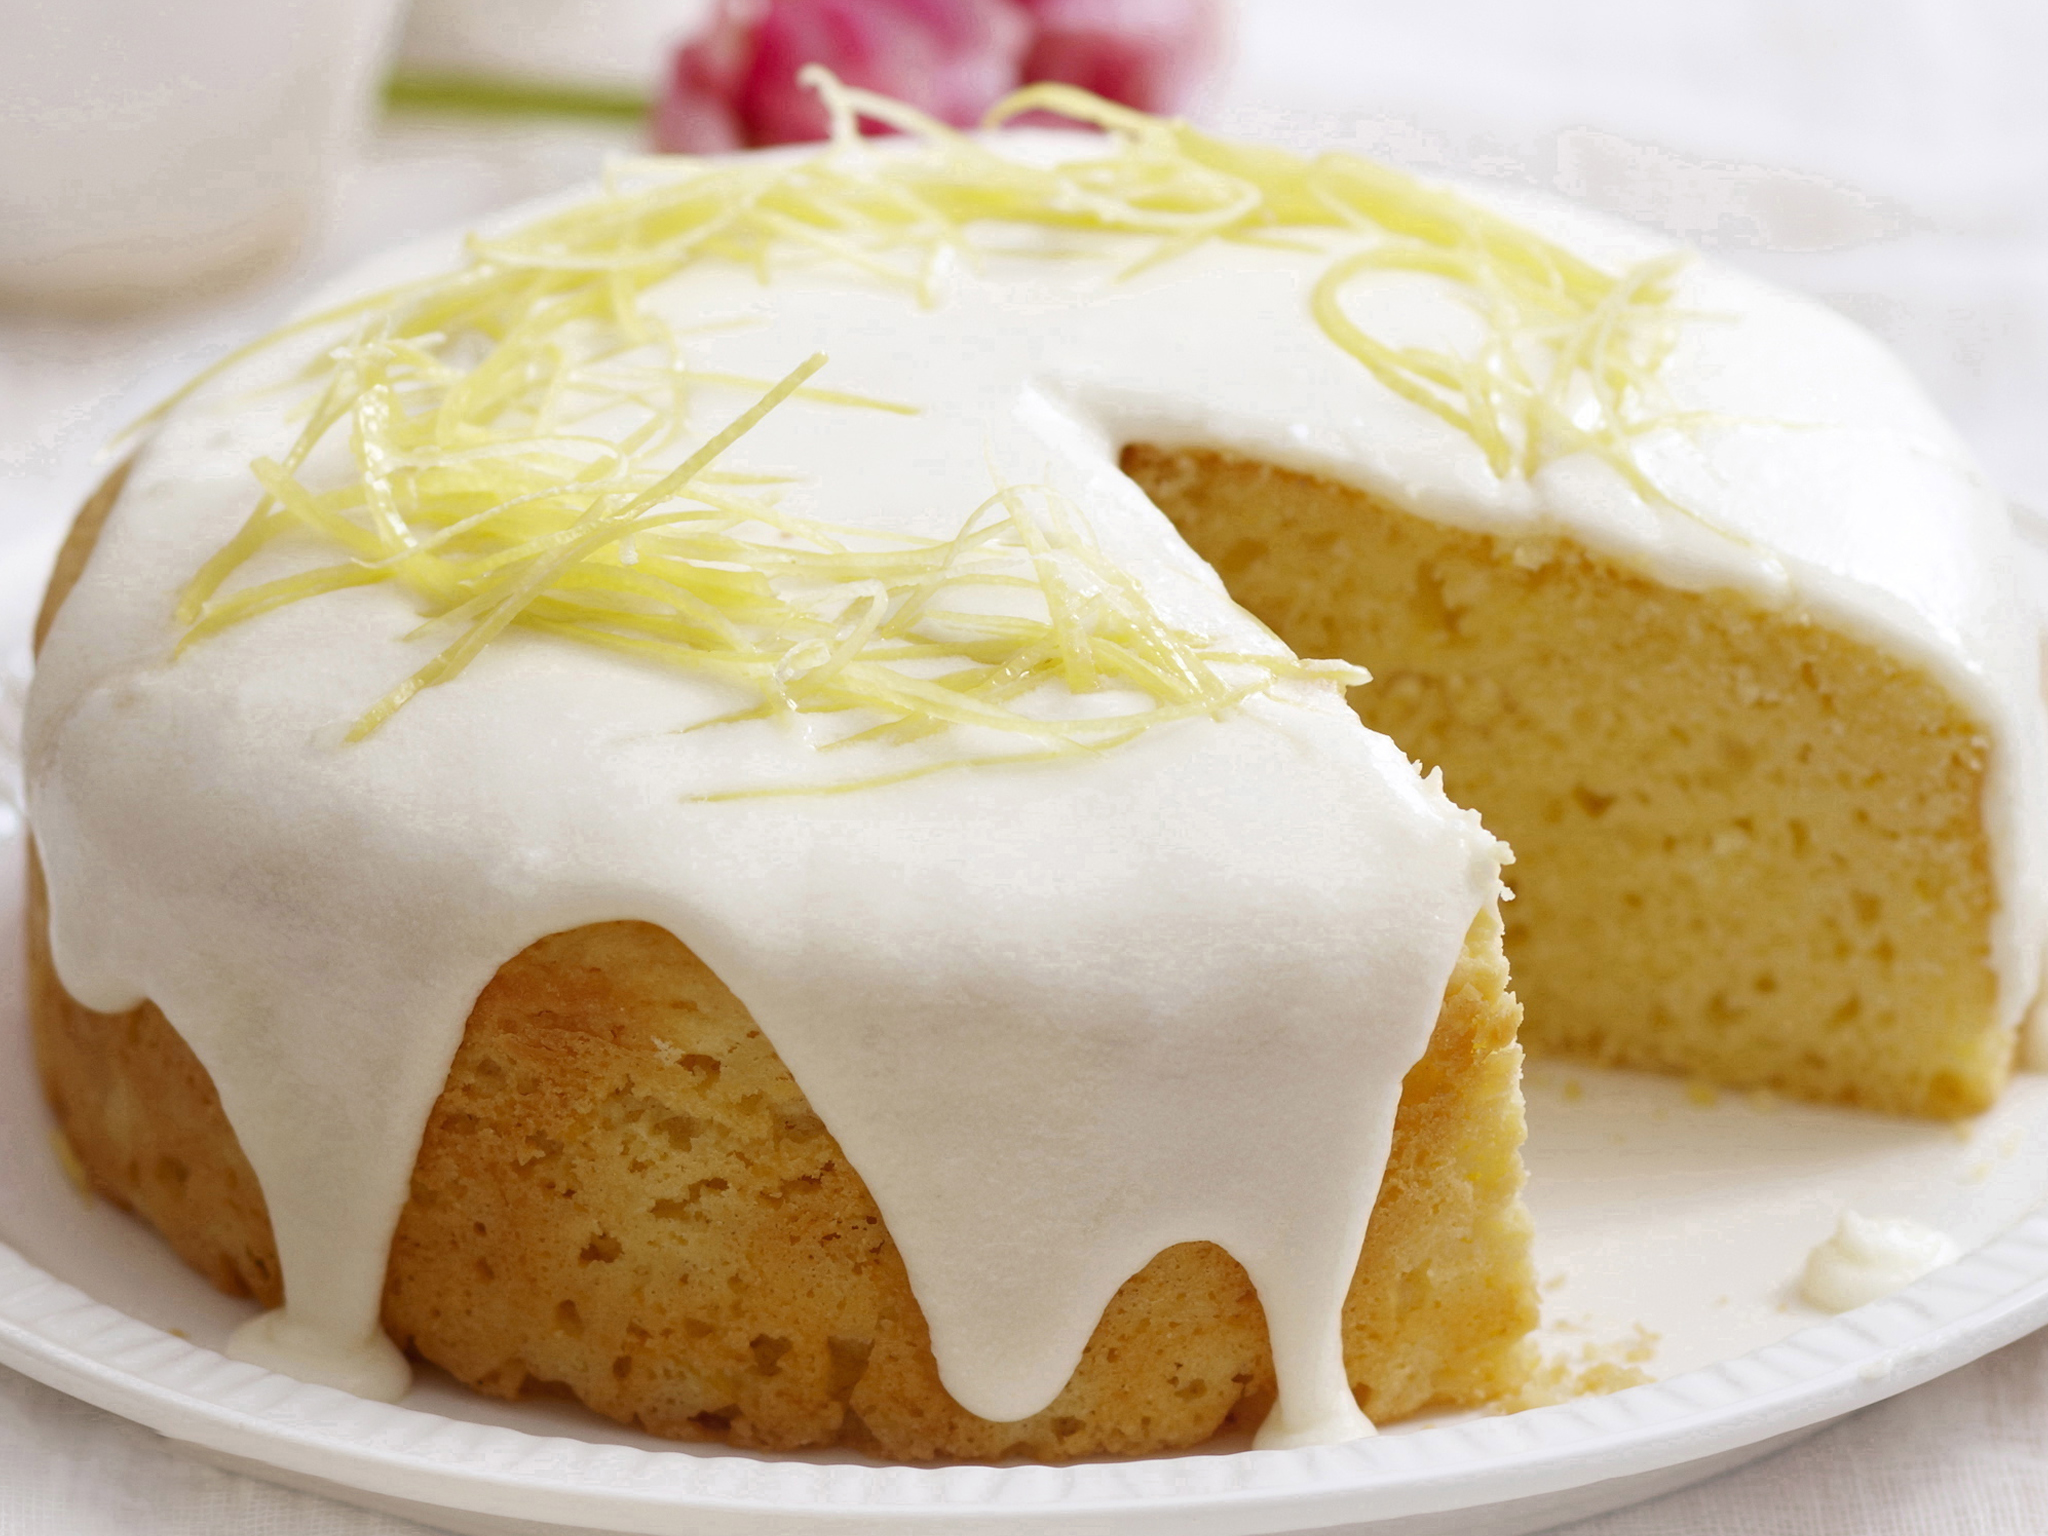 Recipe for lemon sour cream cake